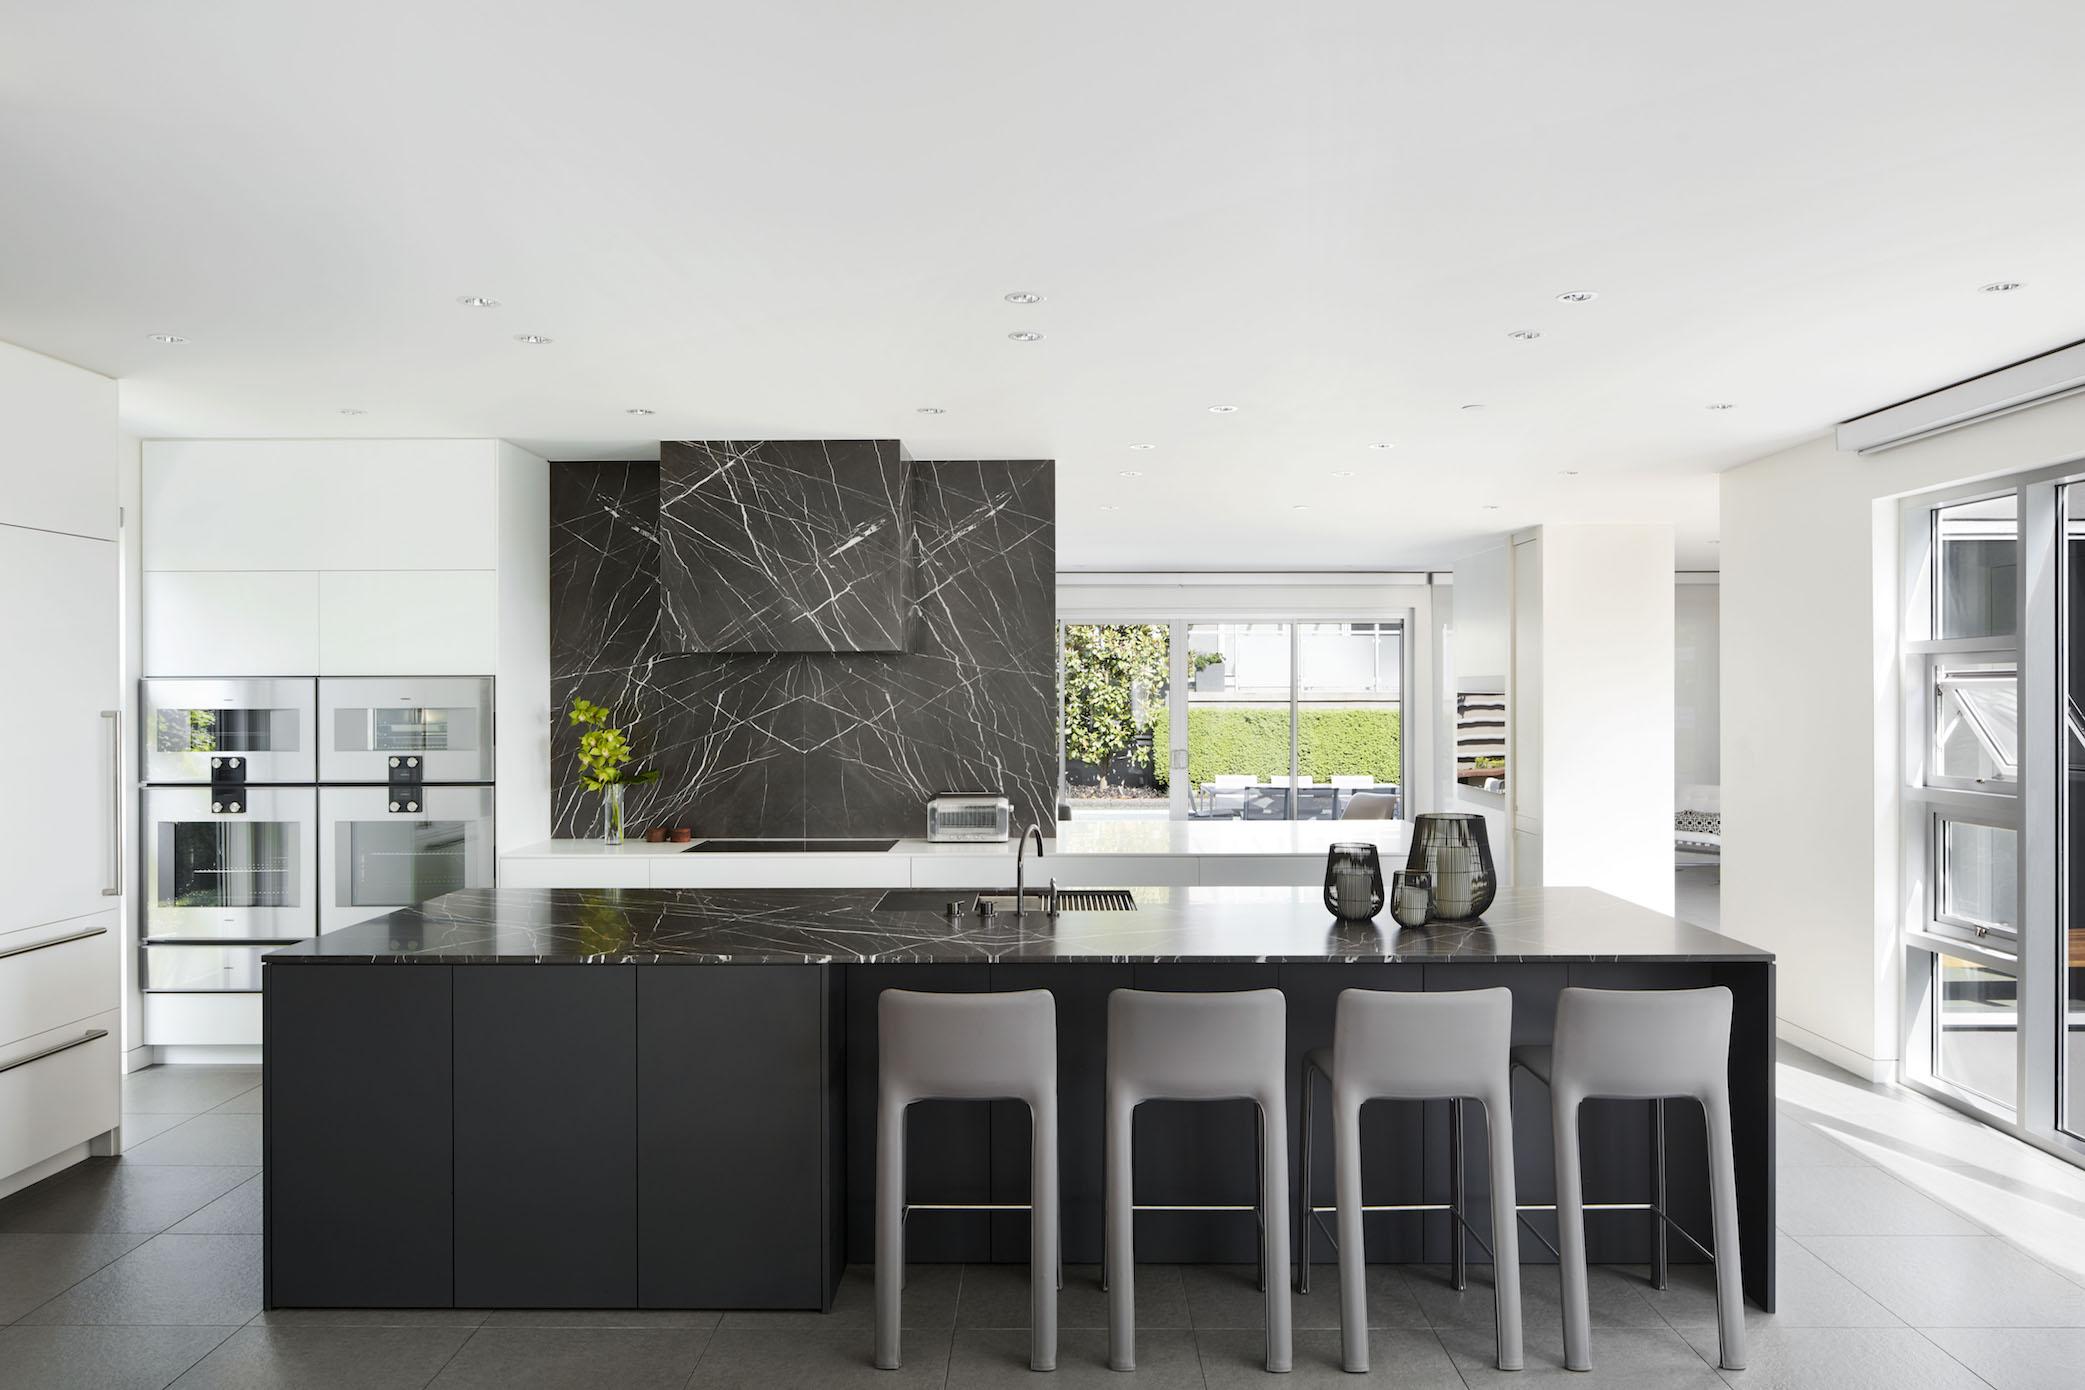 Marine Drive luxury modern kitchen reno